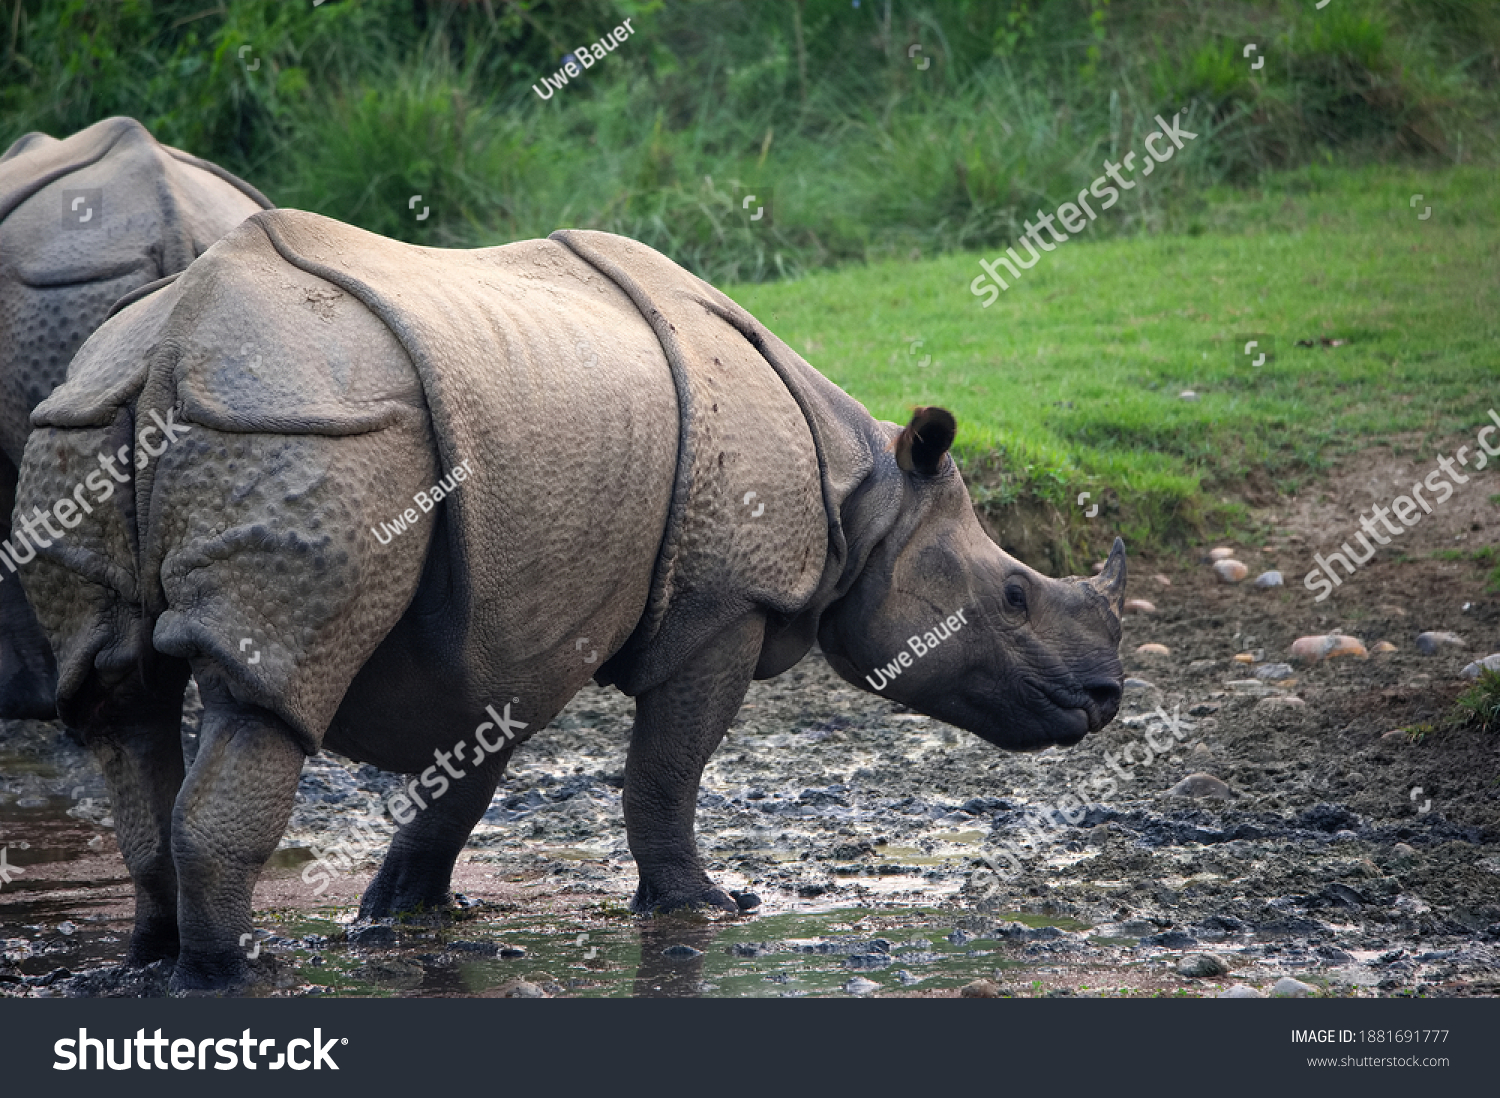 stock-photo-indian-rhinoceros-in-the-eve